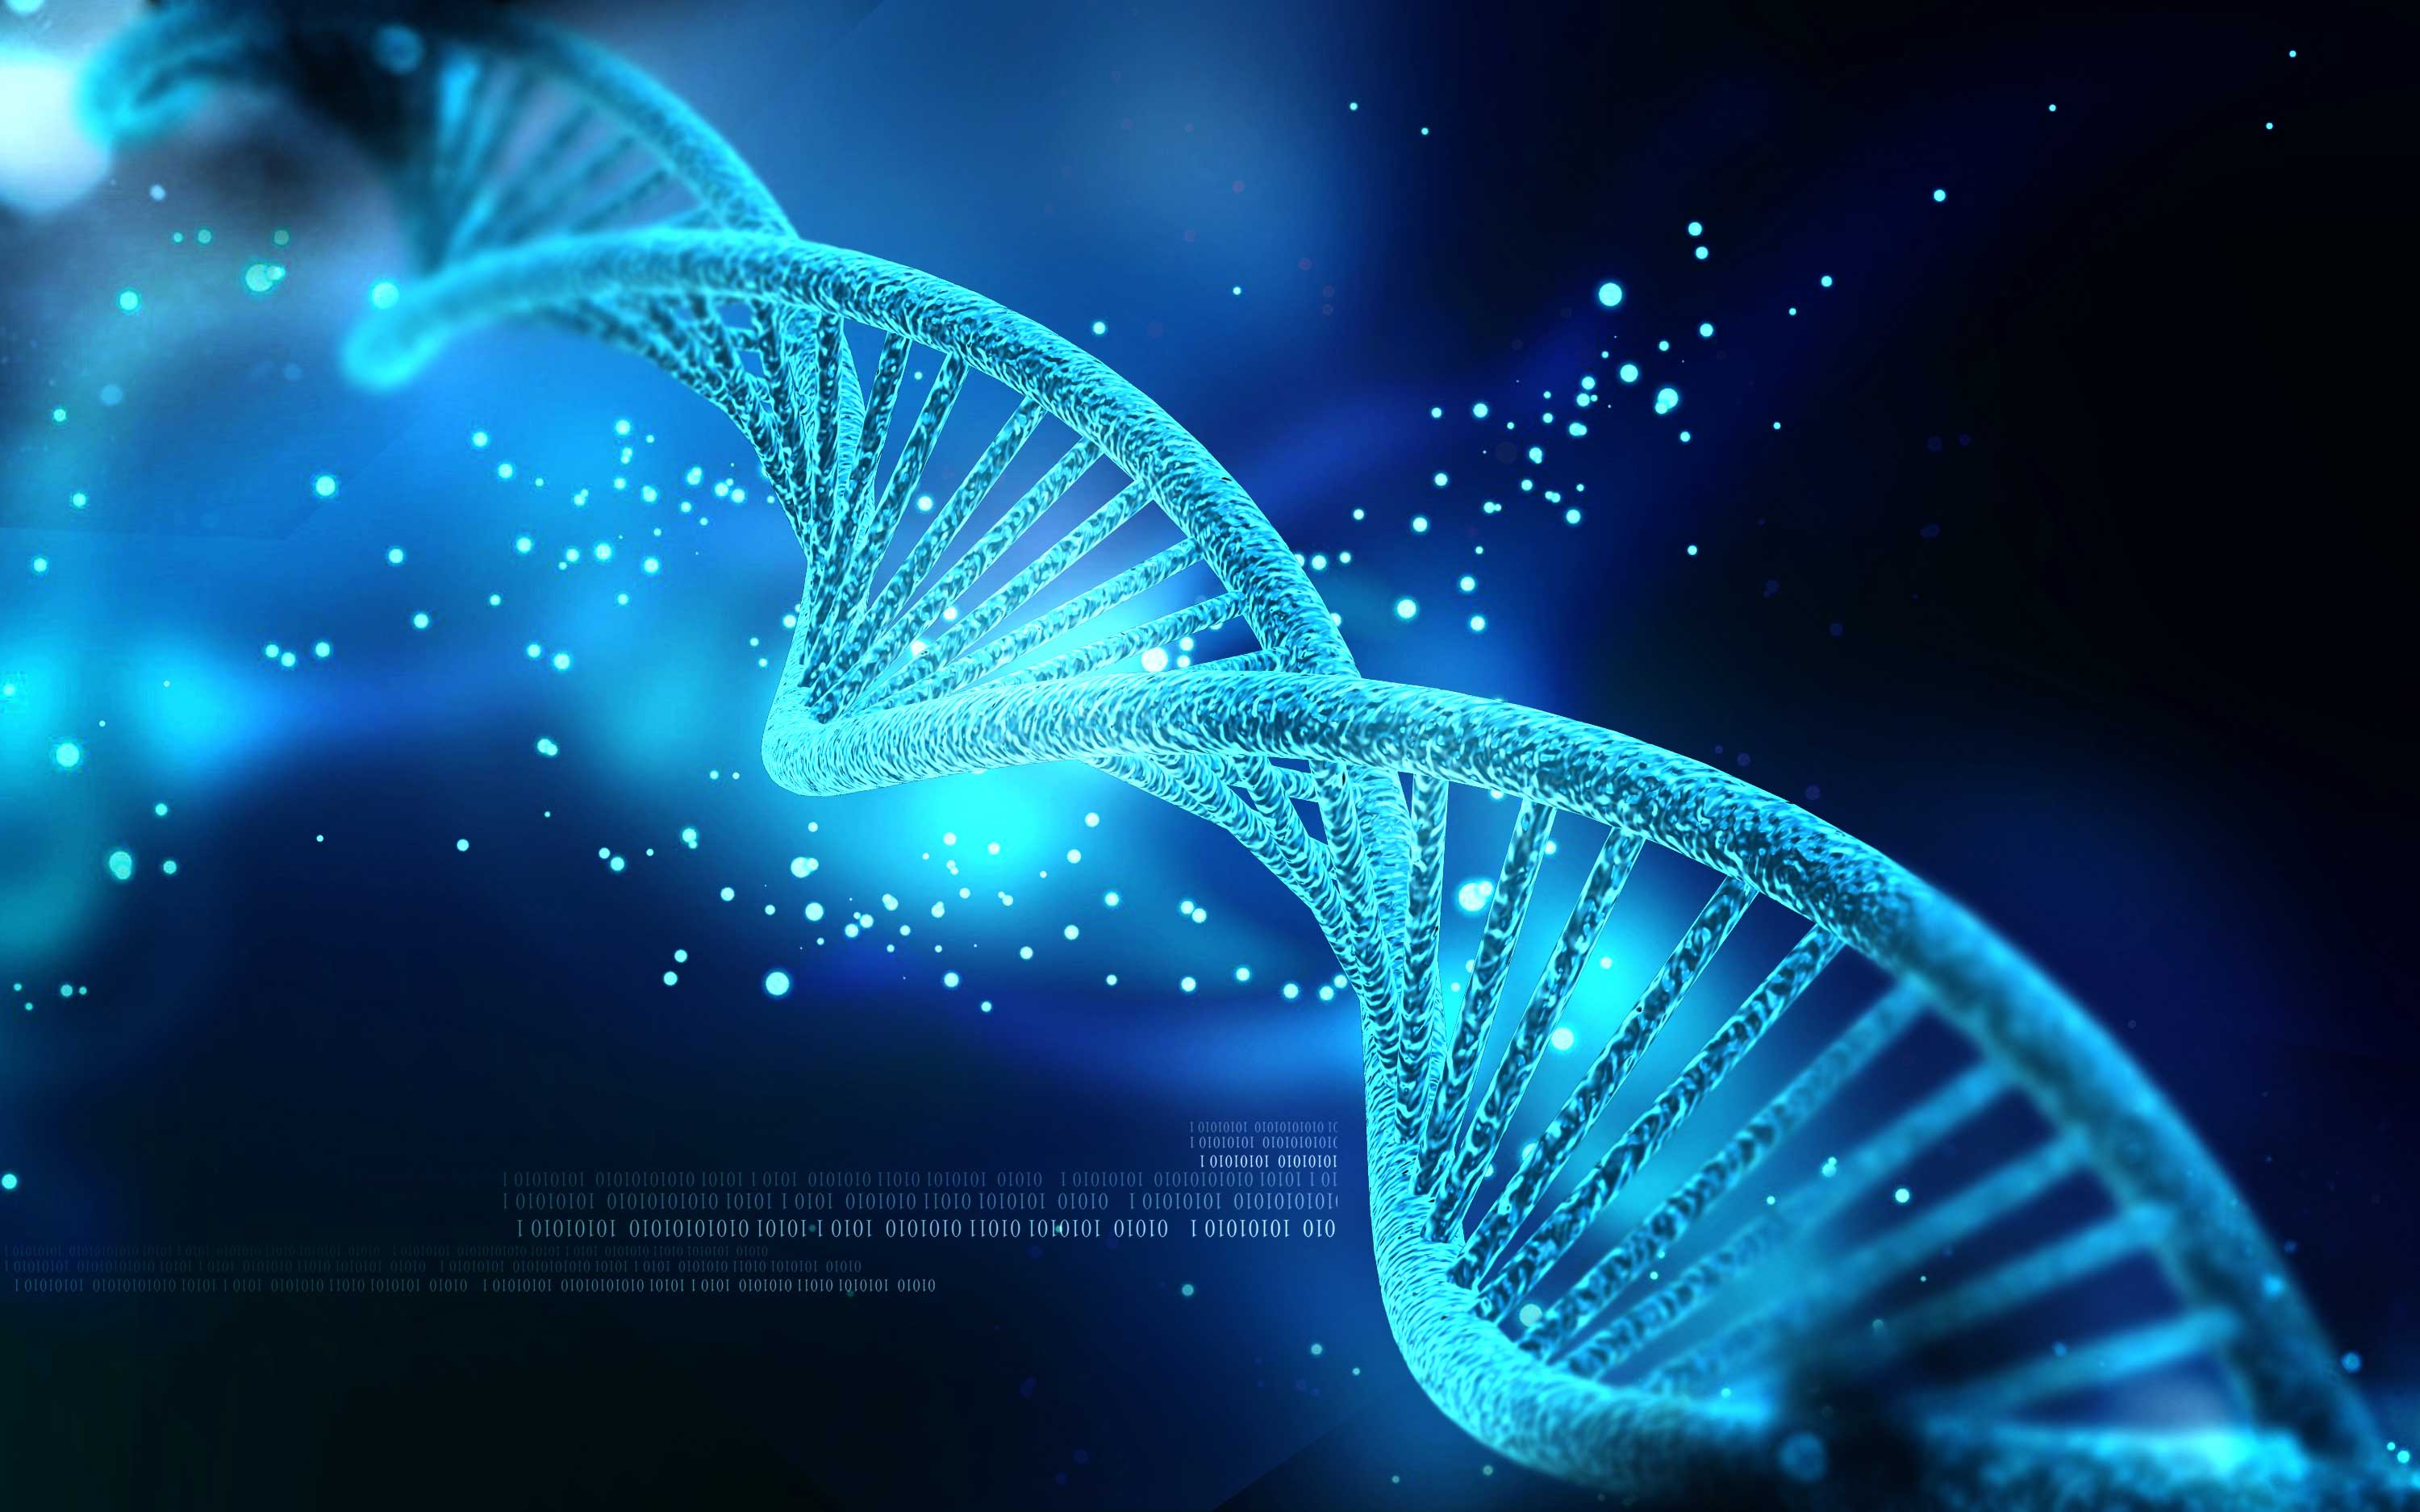 Northwest Biotherapeutics (NWBO) Stock Continues to Trade In a Right Range